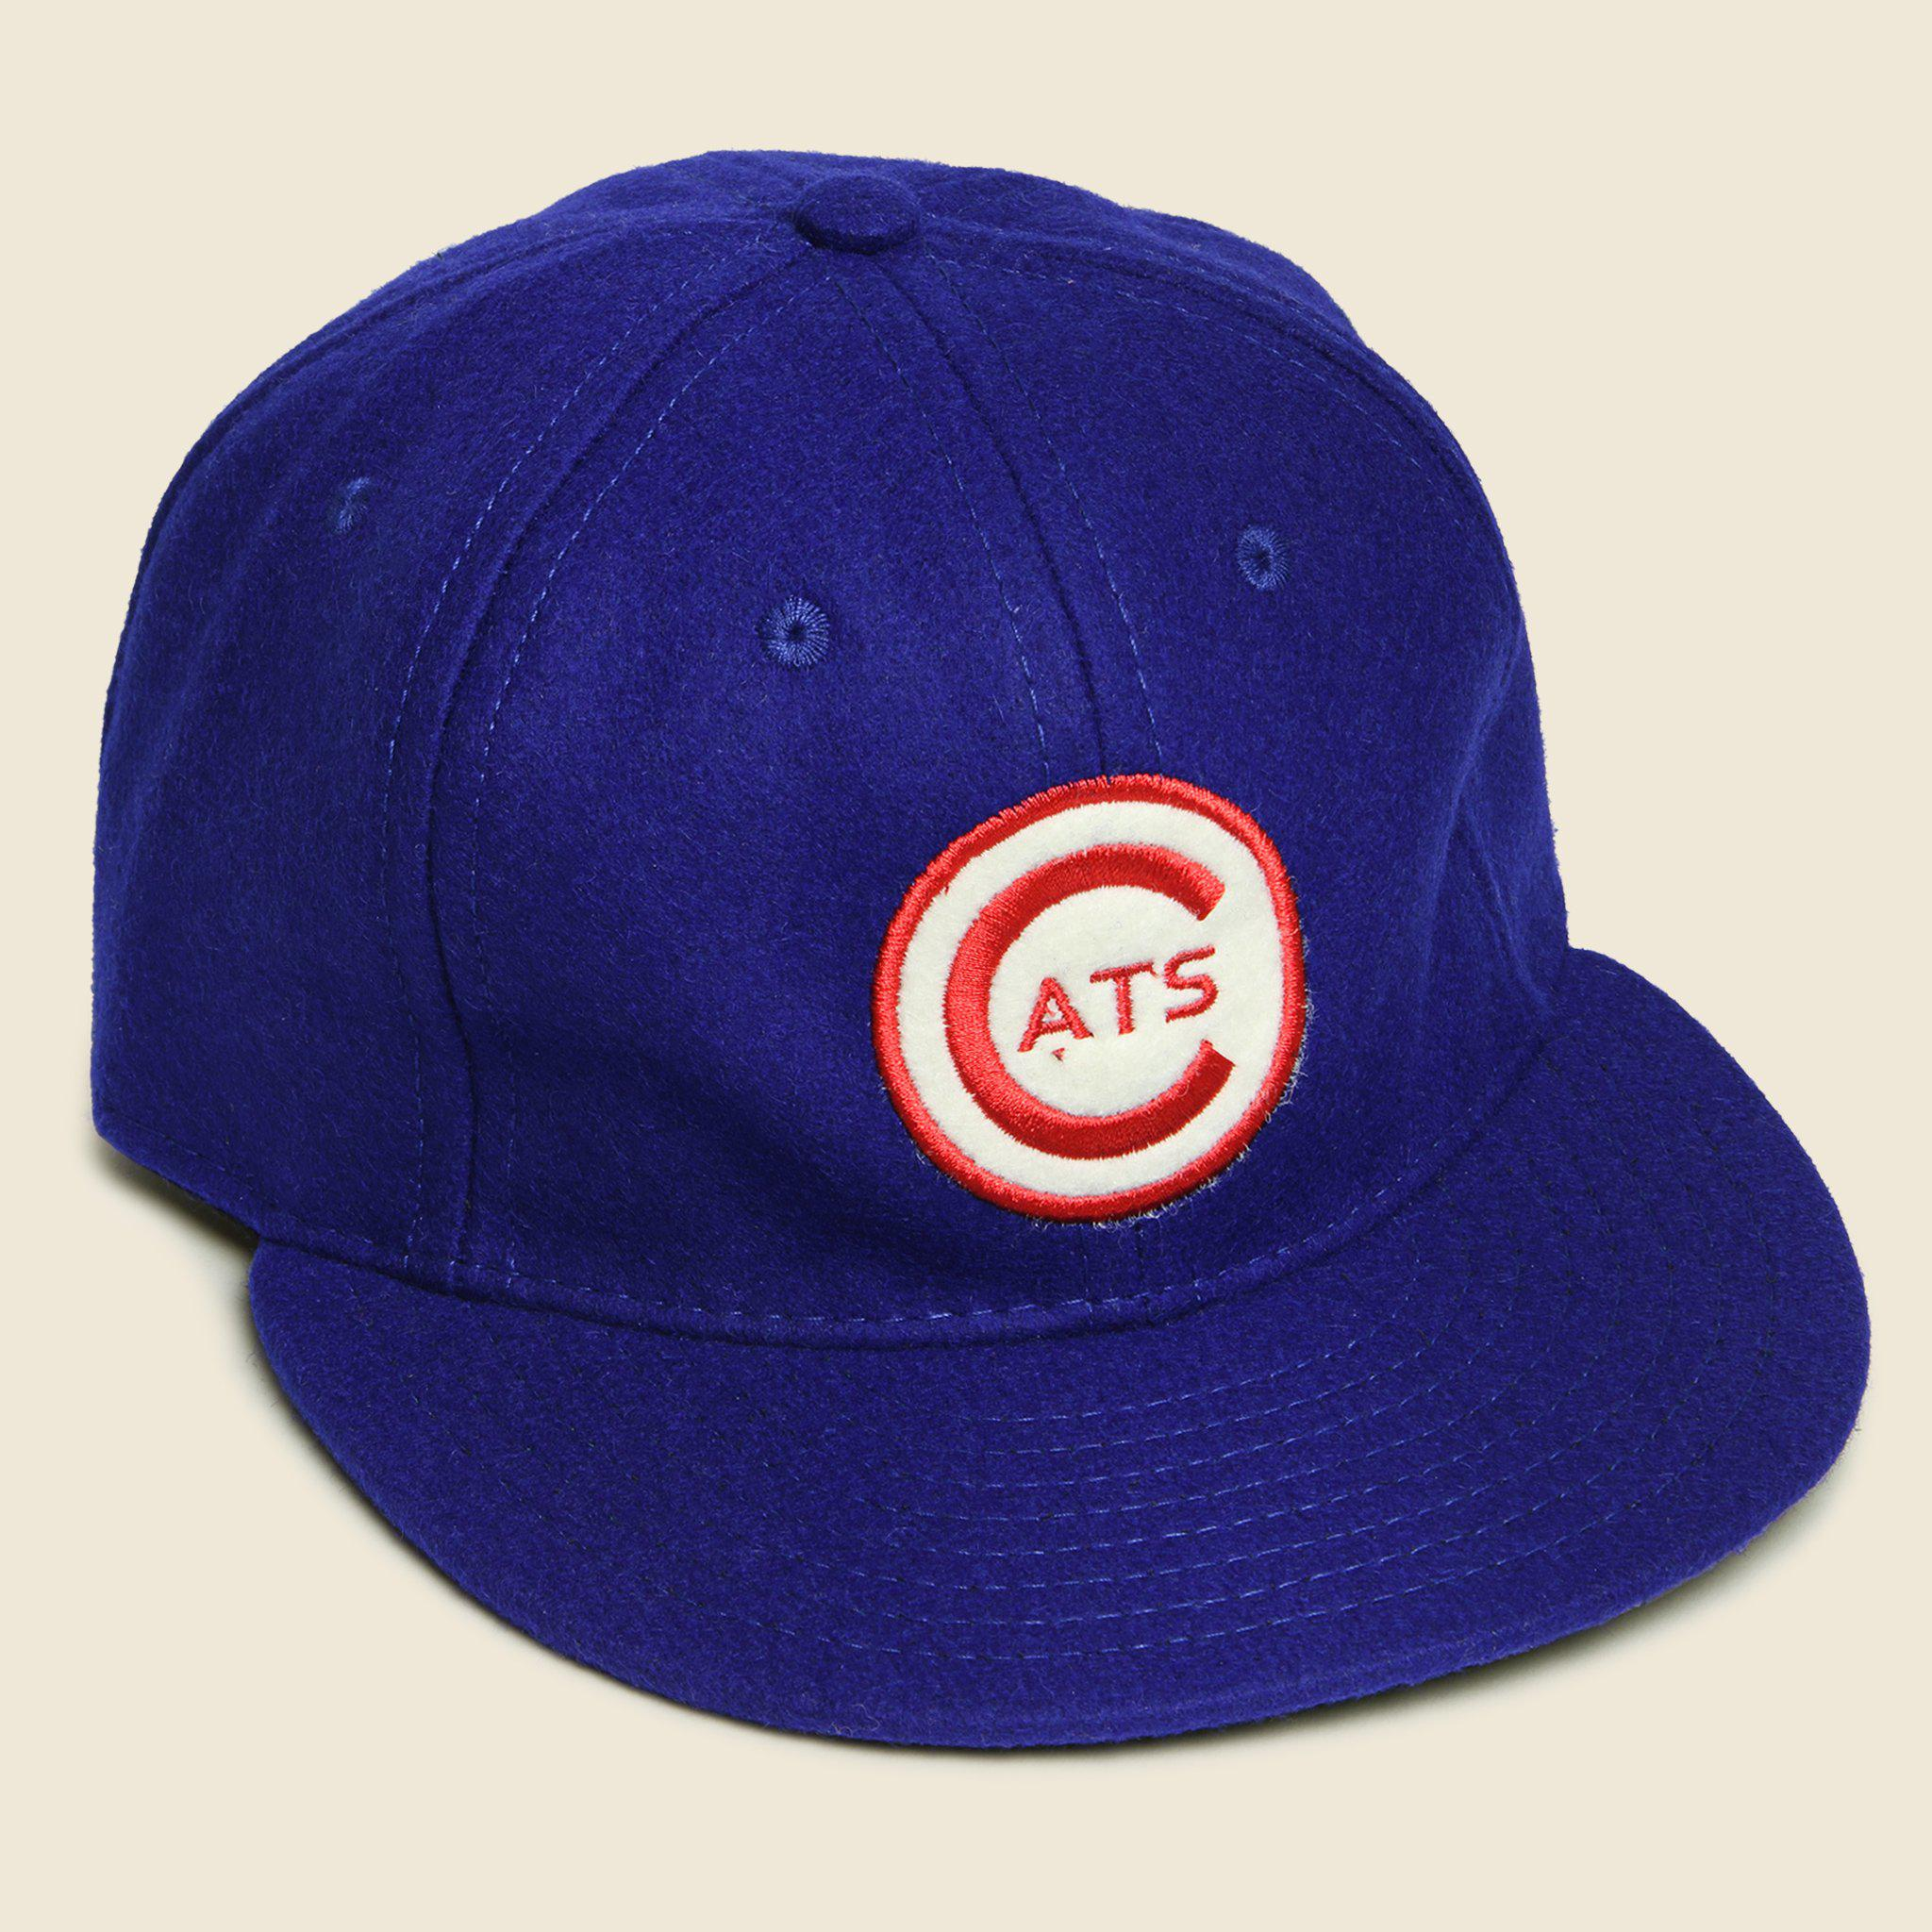 Ebbets Field Flannels. Men s Fort Worth Cats Baseball Cap - Blue. From   49.00. View size guide. One Size 935bdf05cdb9